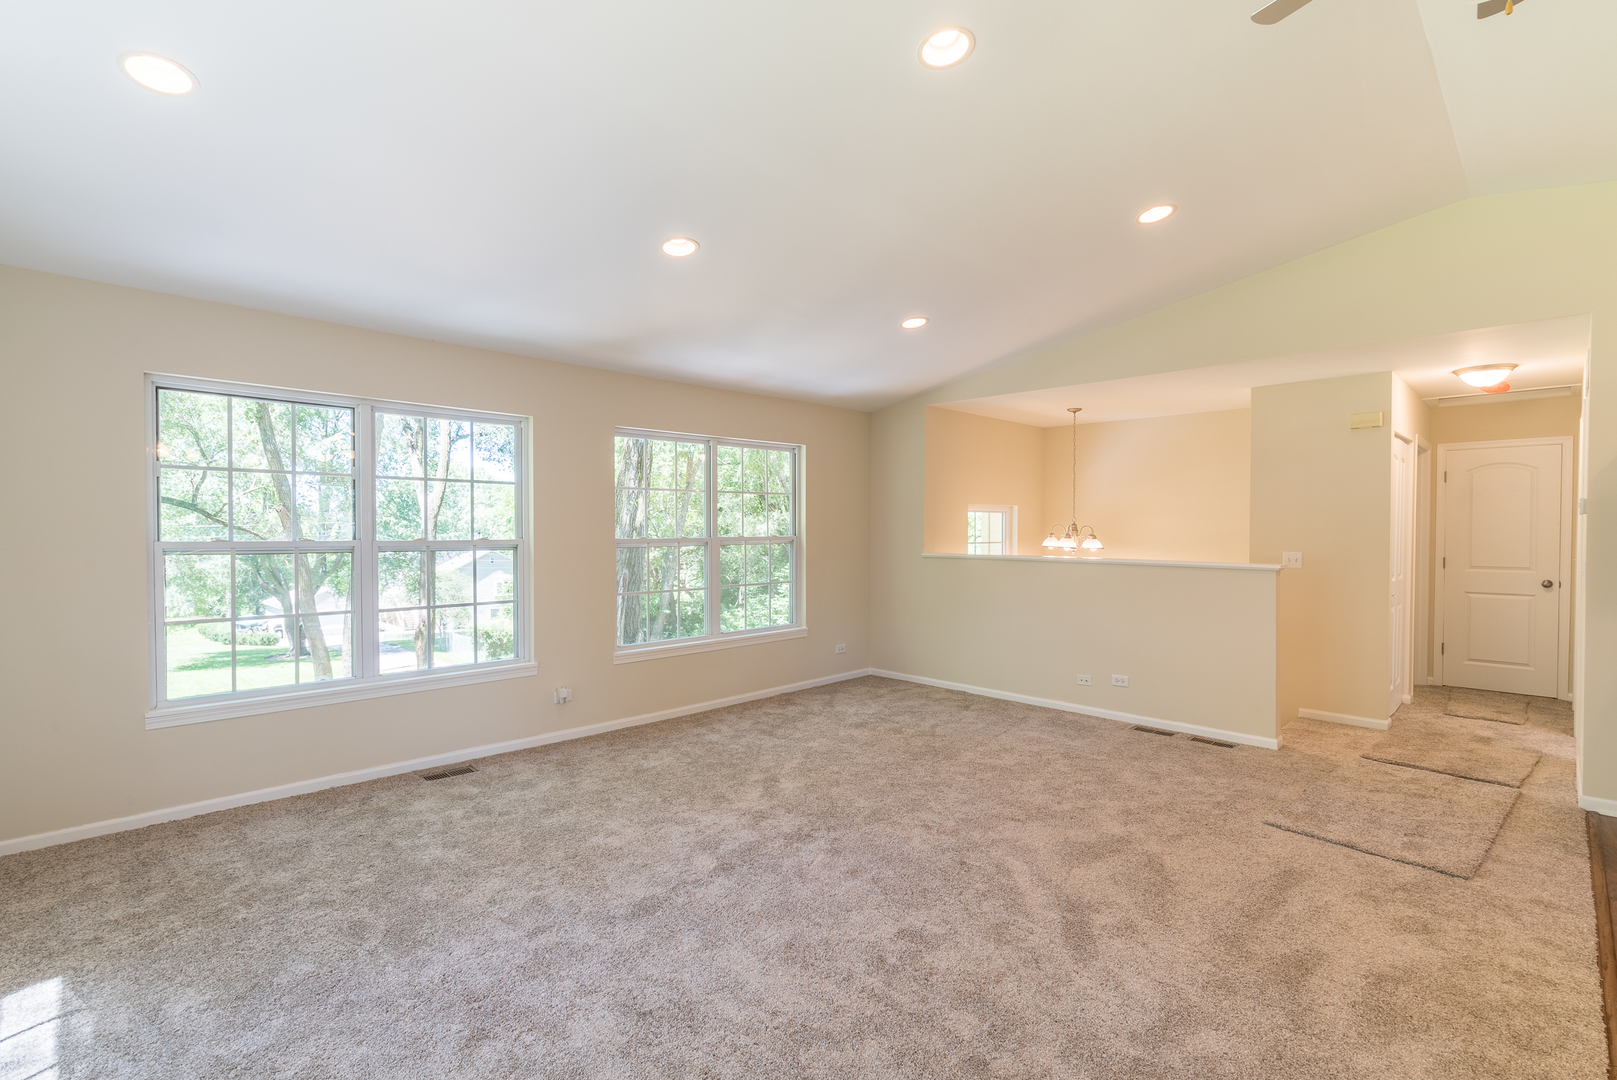 wonder lake hispanic singles Sold: 6 bed, 25 bath, 2534 sq ft house located at 8304 howe rd, wonder lake, il 60097 sold for $229,900 on jun 22, 2018  single family residential.